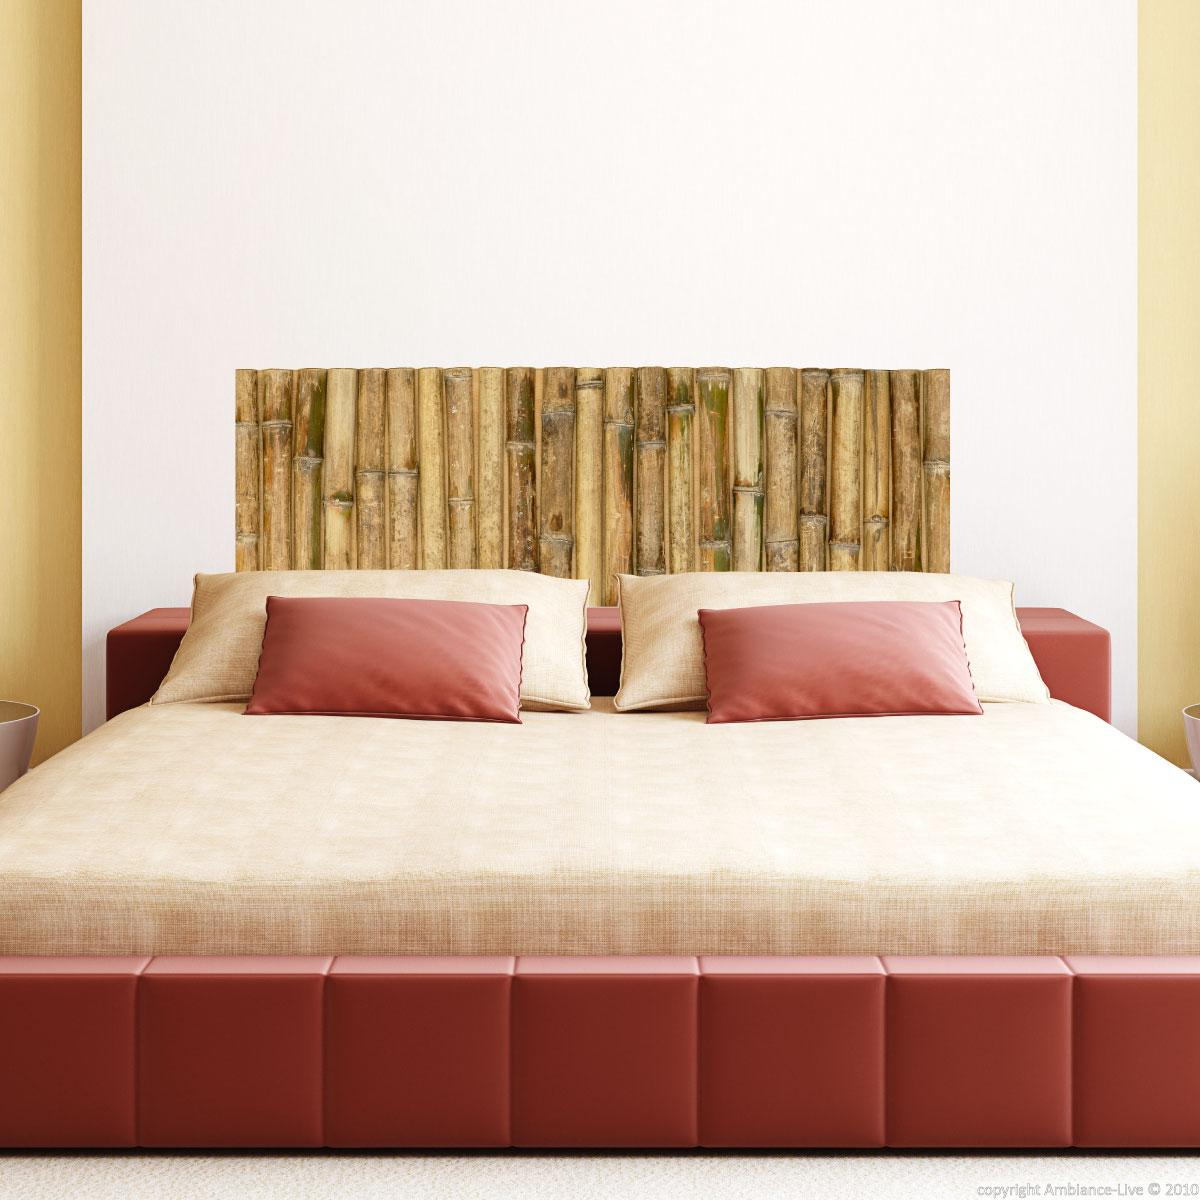 wall decal large bamboo design stickers bedroom